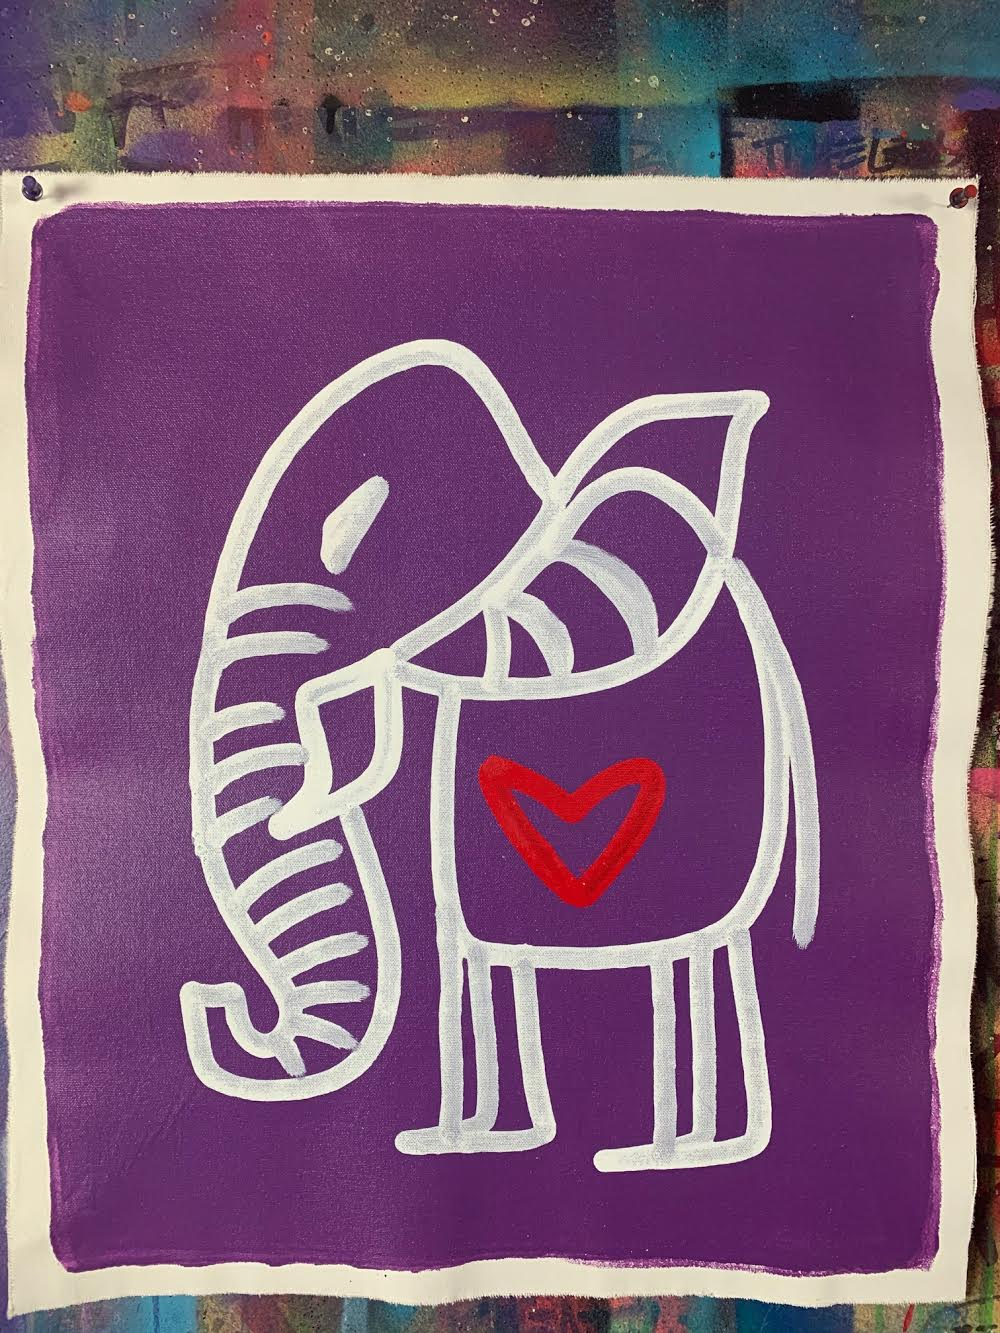 Cave Elephant |Purple + White + Red Heart